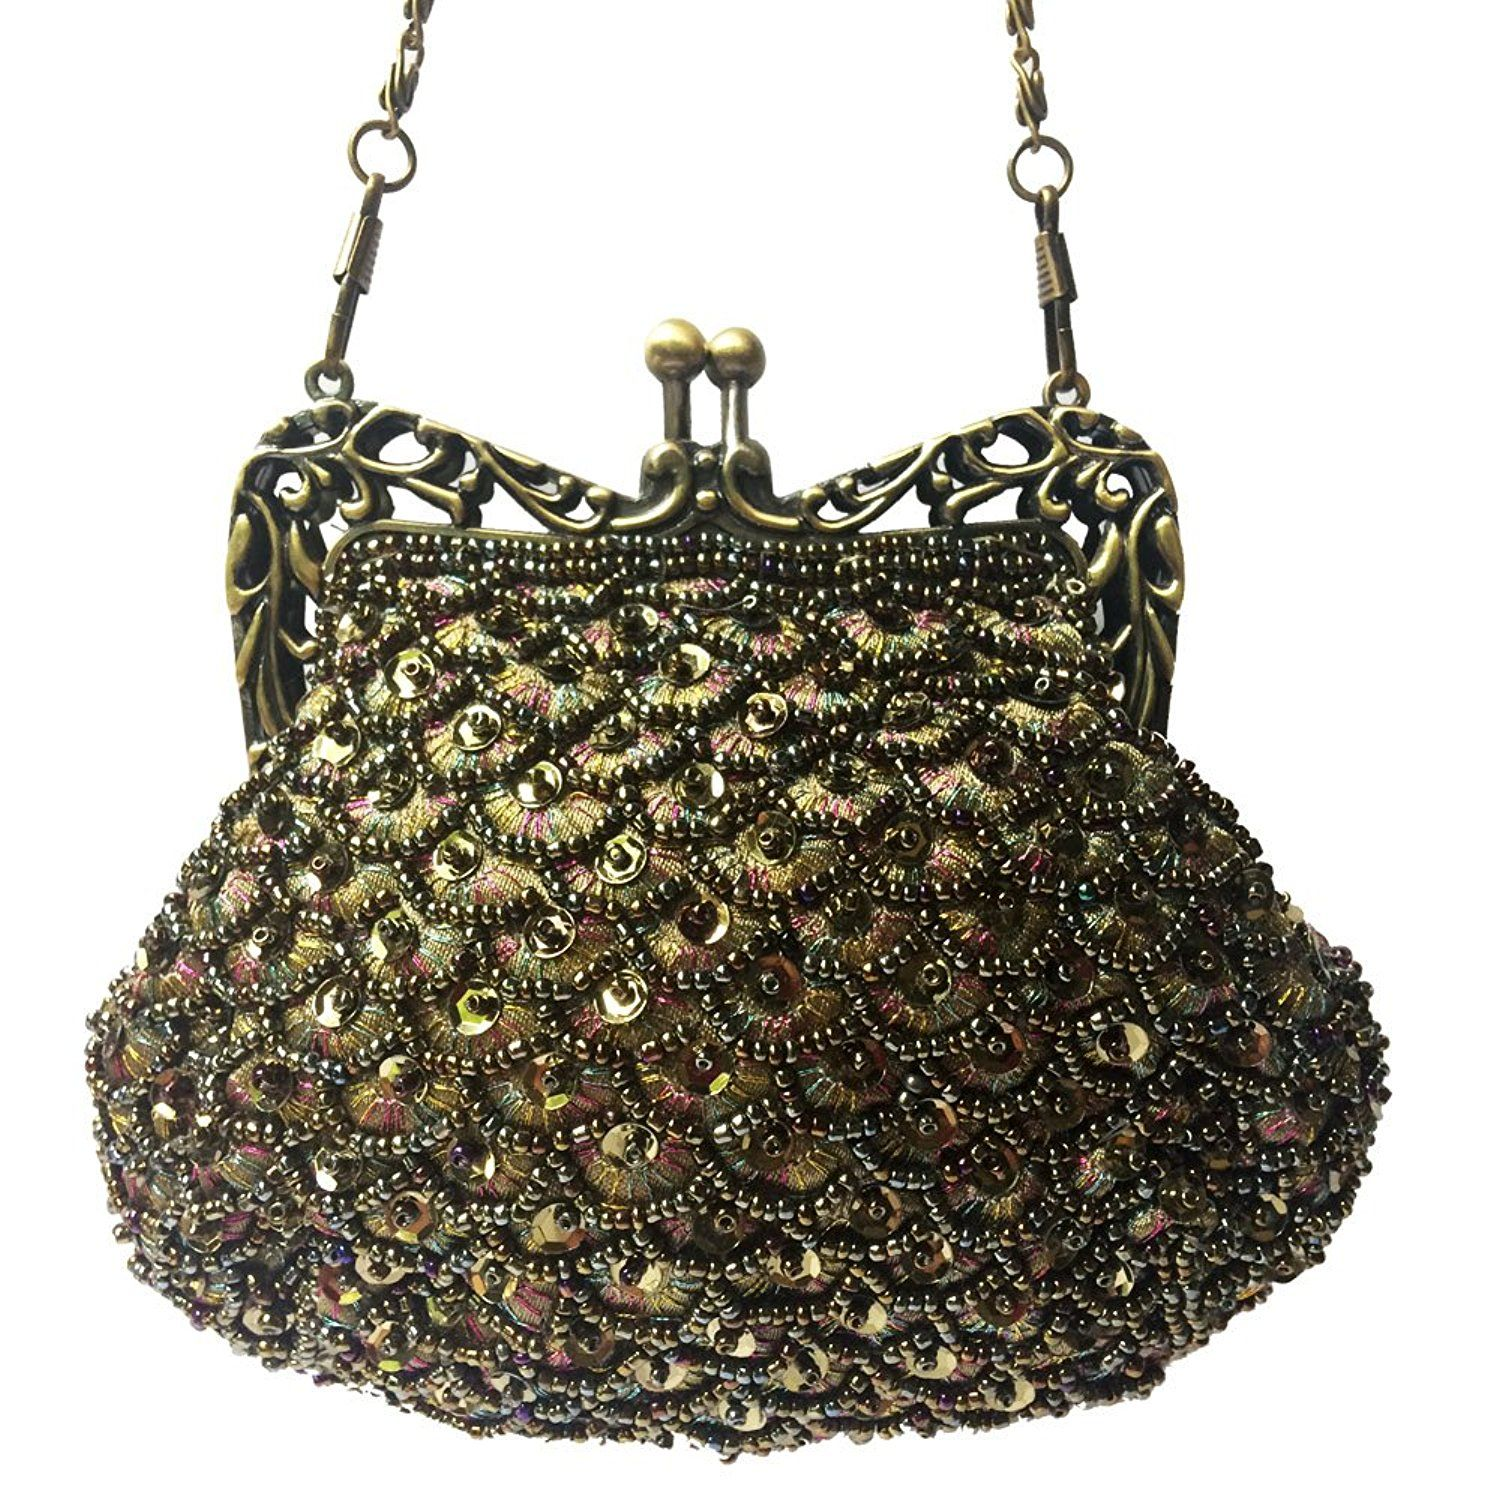 old fashioned coin purse